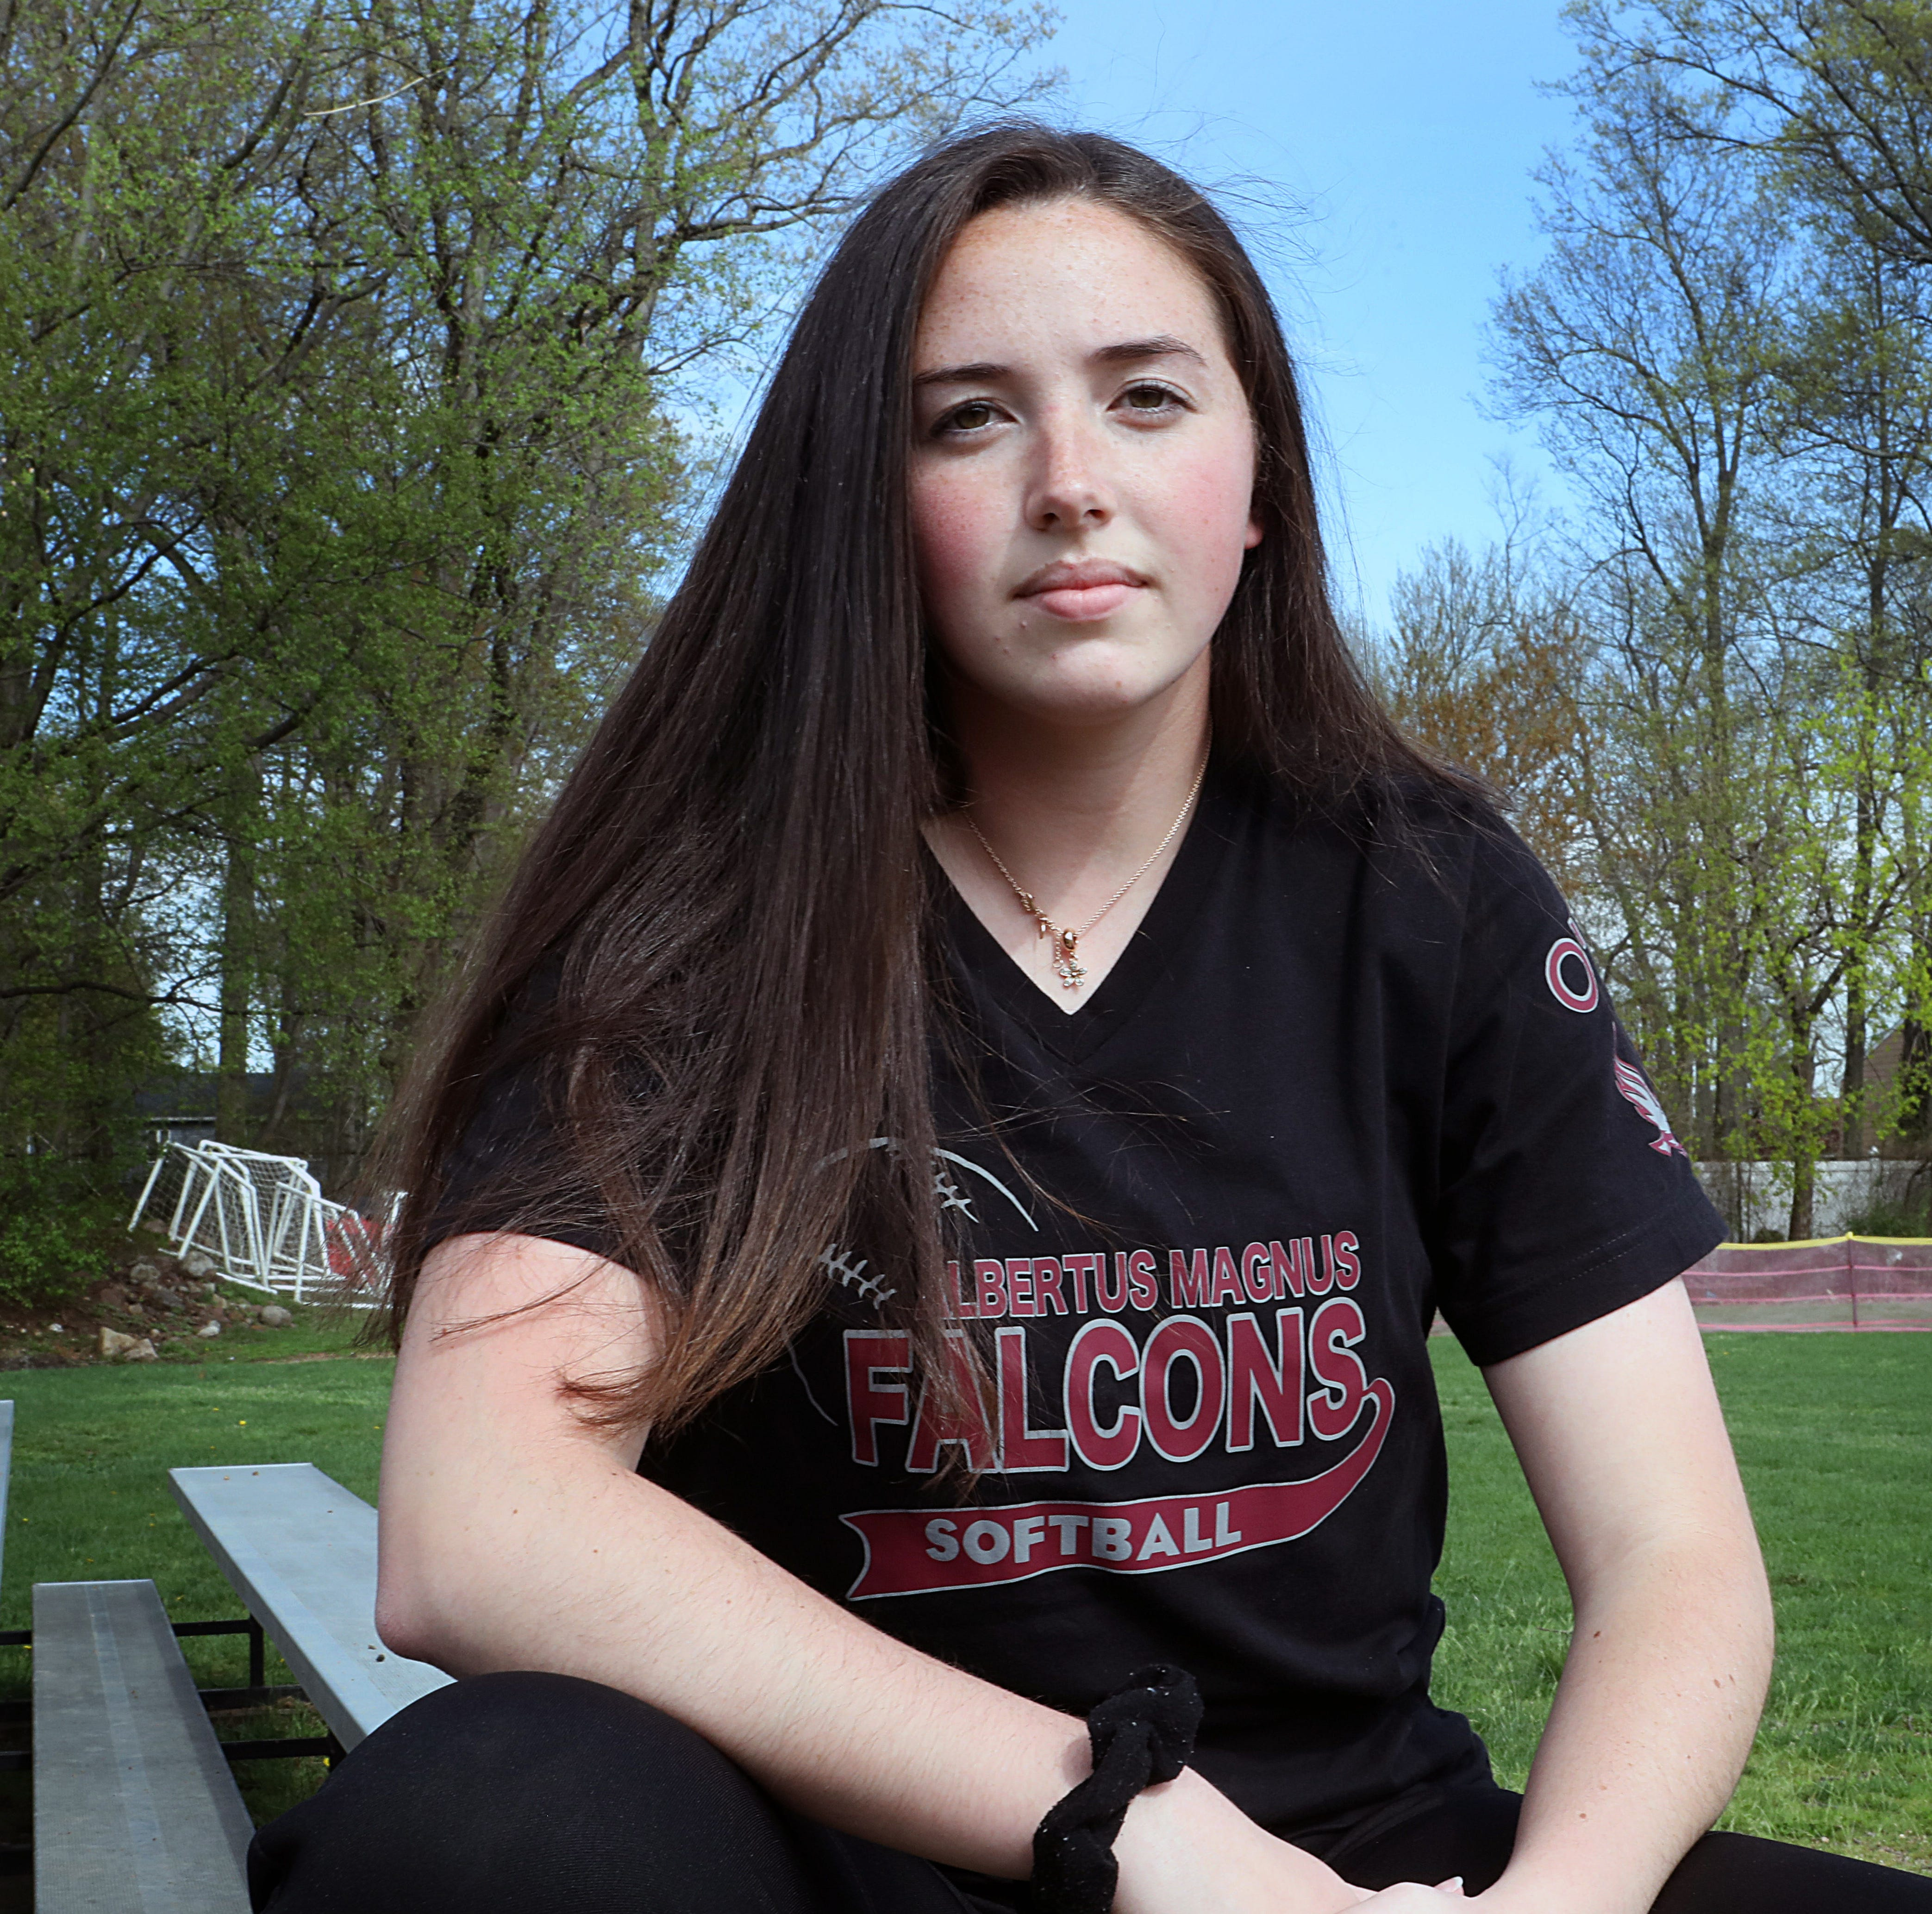 Rockland Scholar-Athlete: Albertus Magnus' Kelly O'Brien eyes one last dance at sectionals